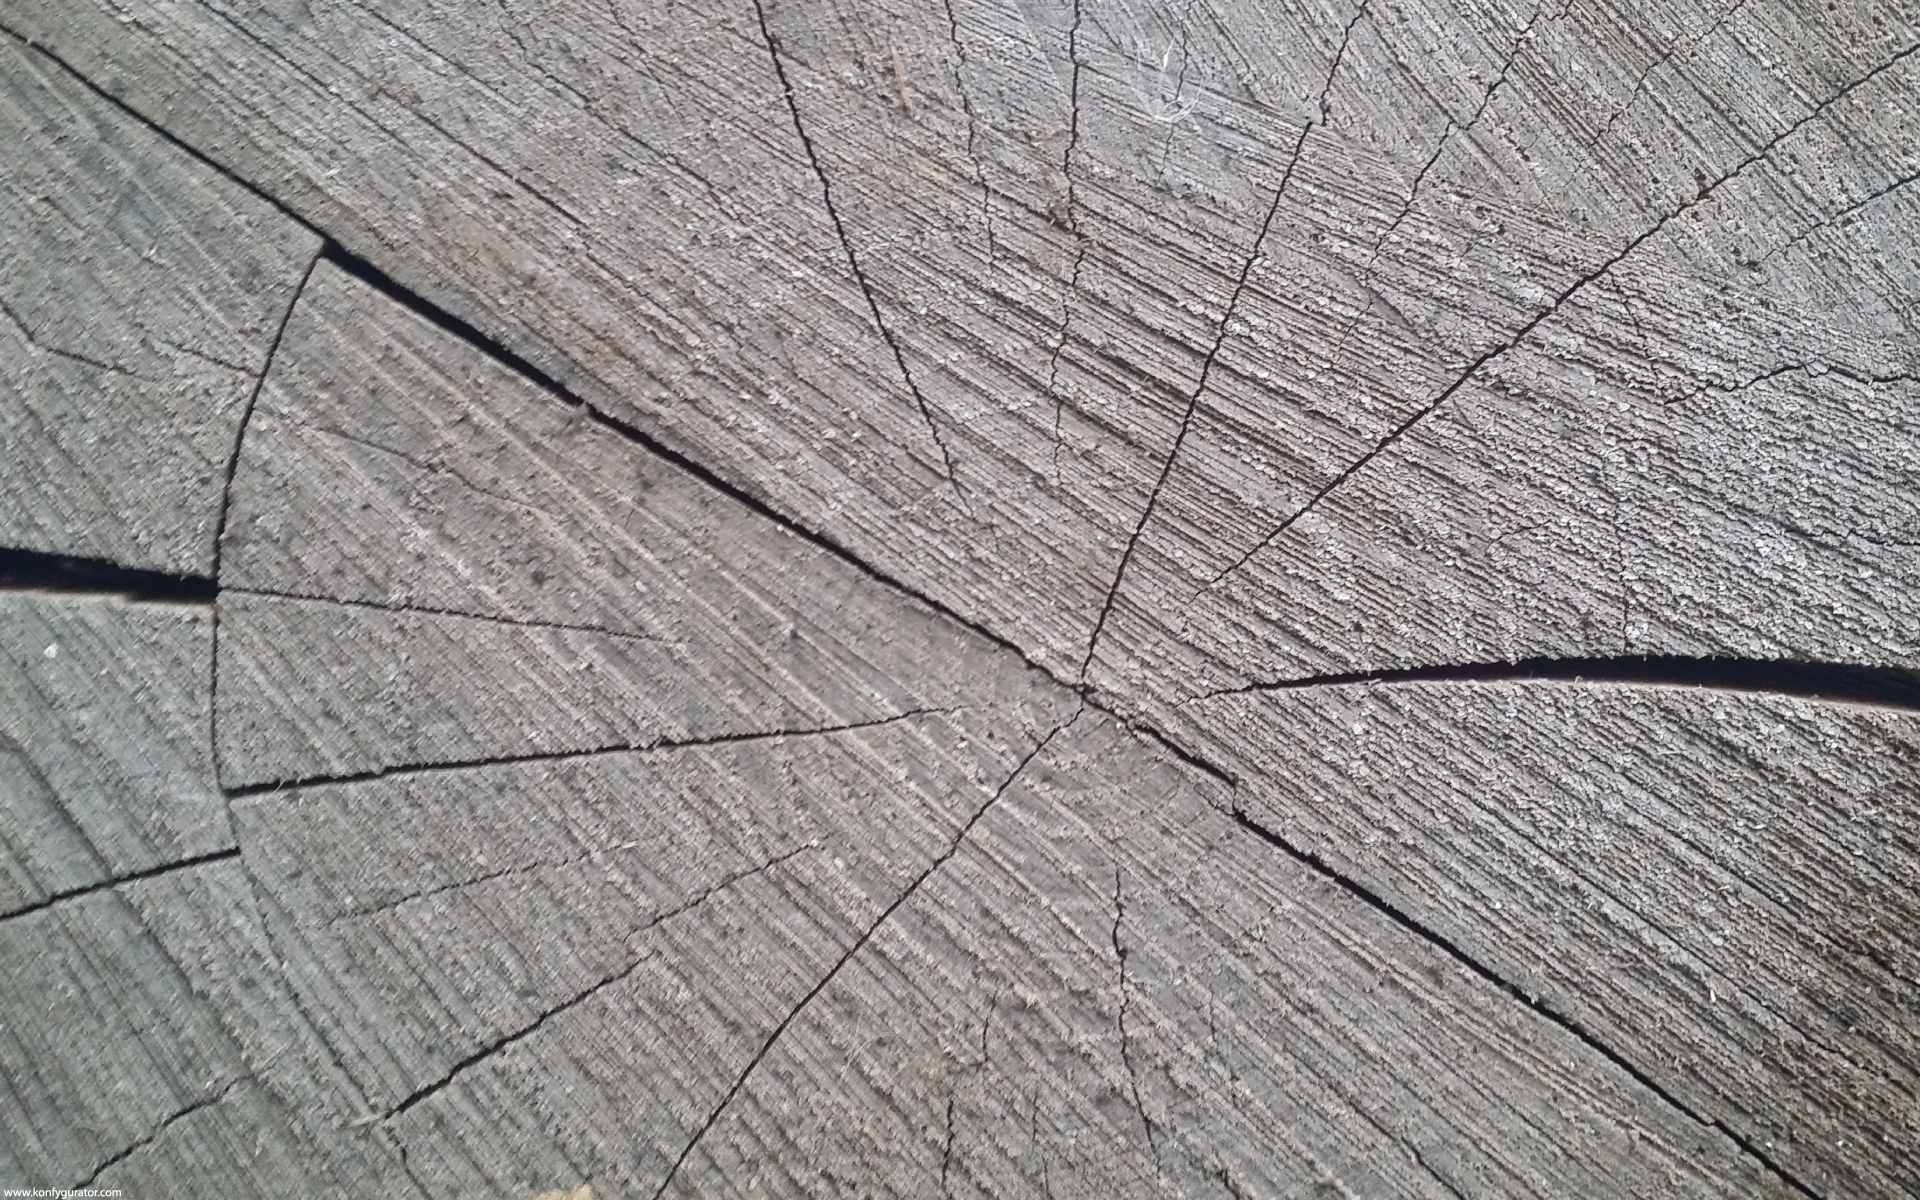 HD Wallpapers - Textures - stump, circular, lines, wood